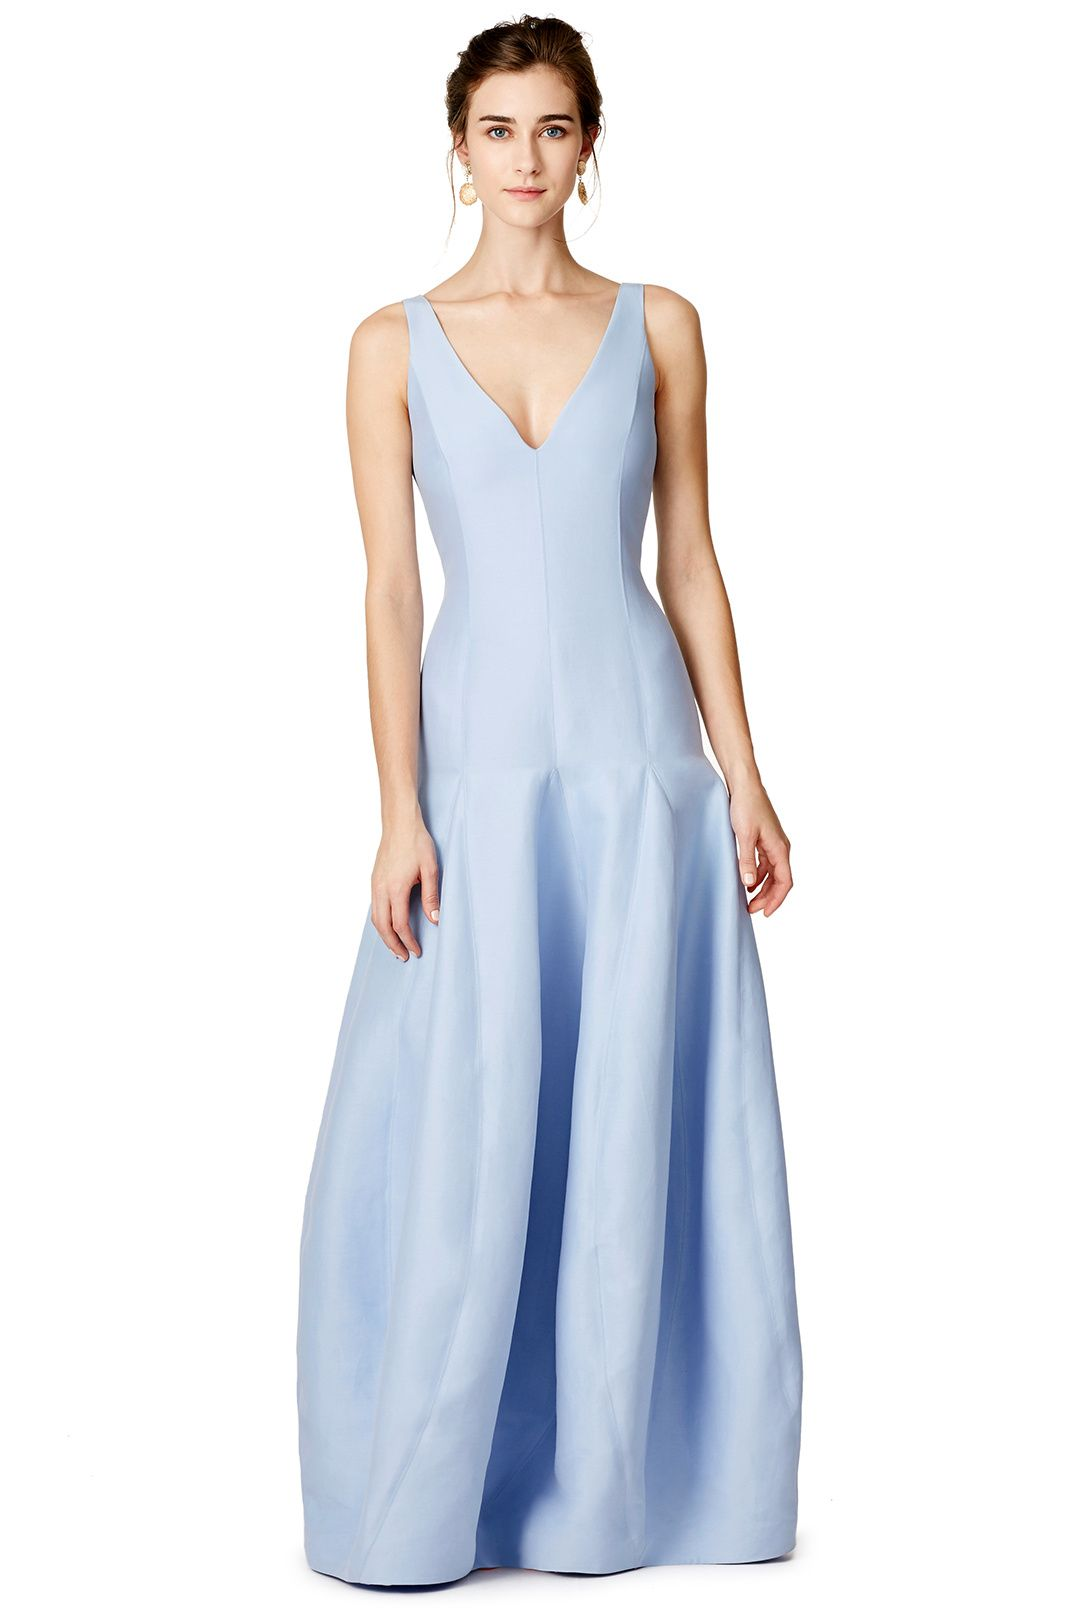 Plain light blue gown google search books pinterest skylark